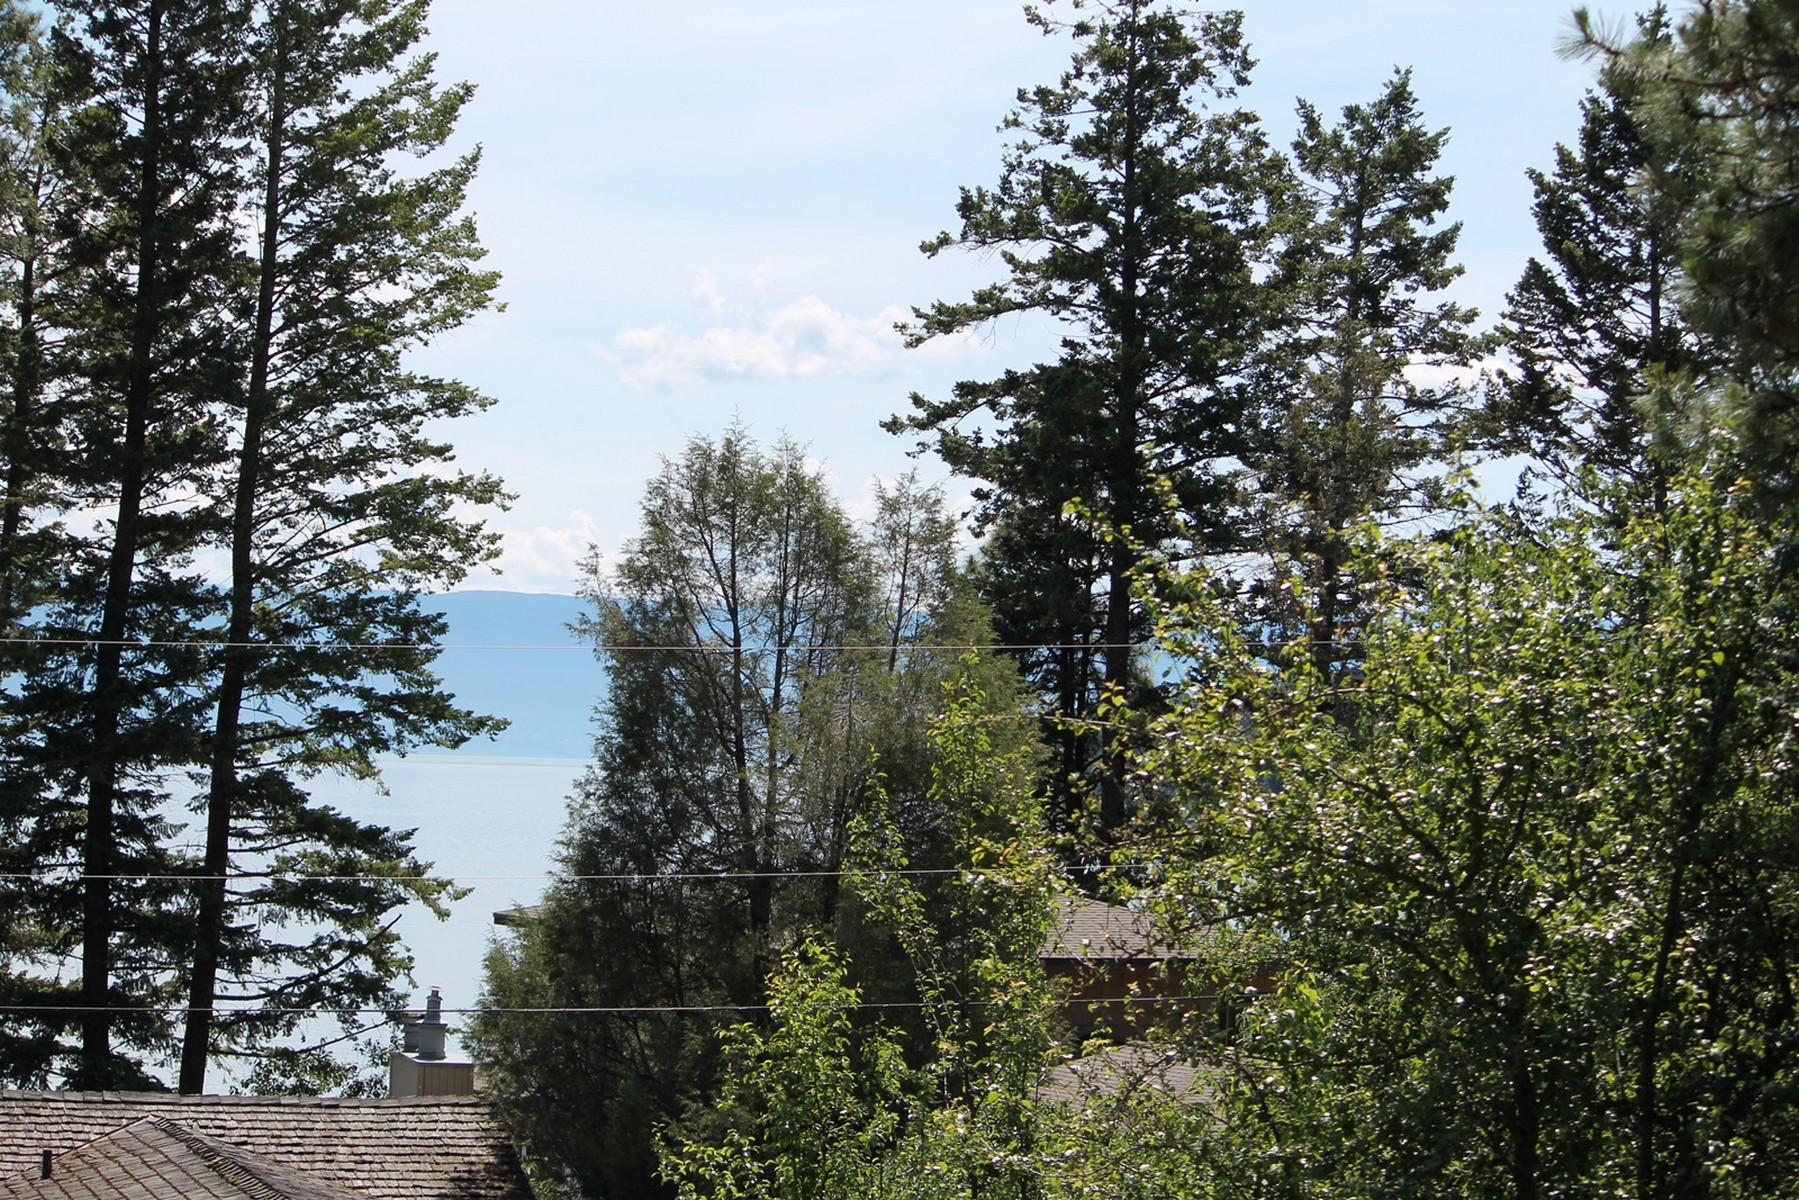 Additional photo for property listing at 645 N Juniper Bay Rd , Somers, MT 59932  Somers, Montana 59932 United States